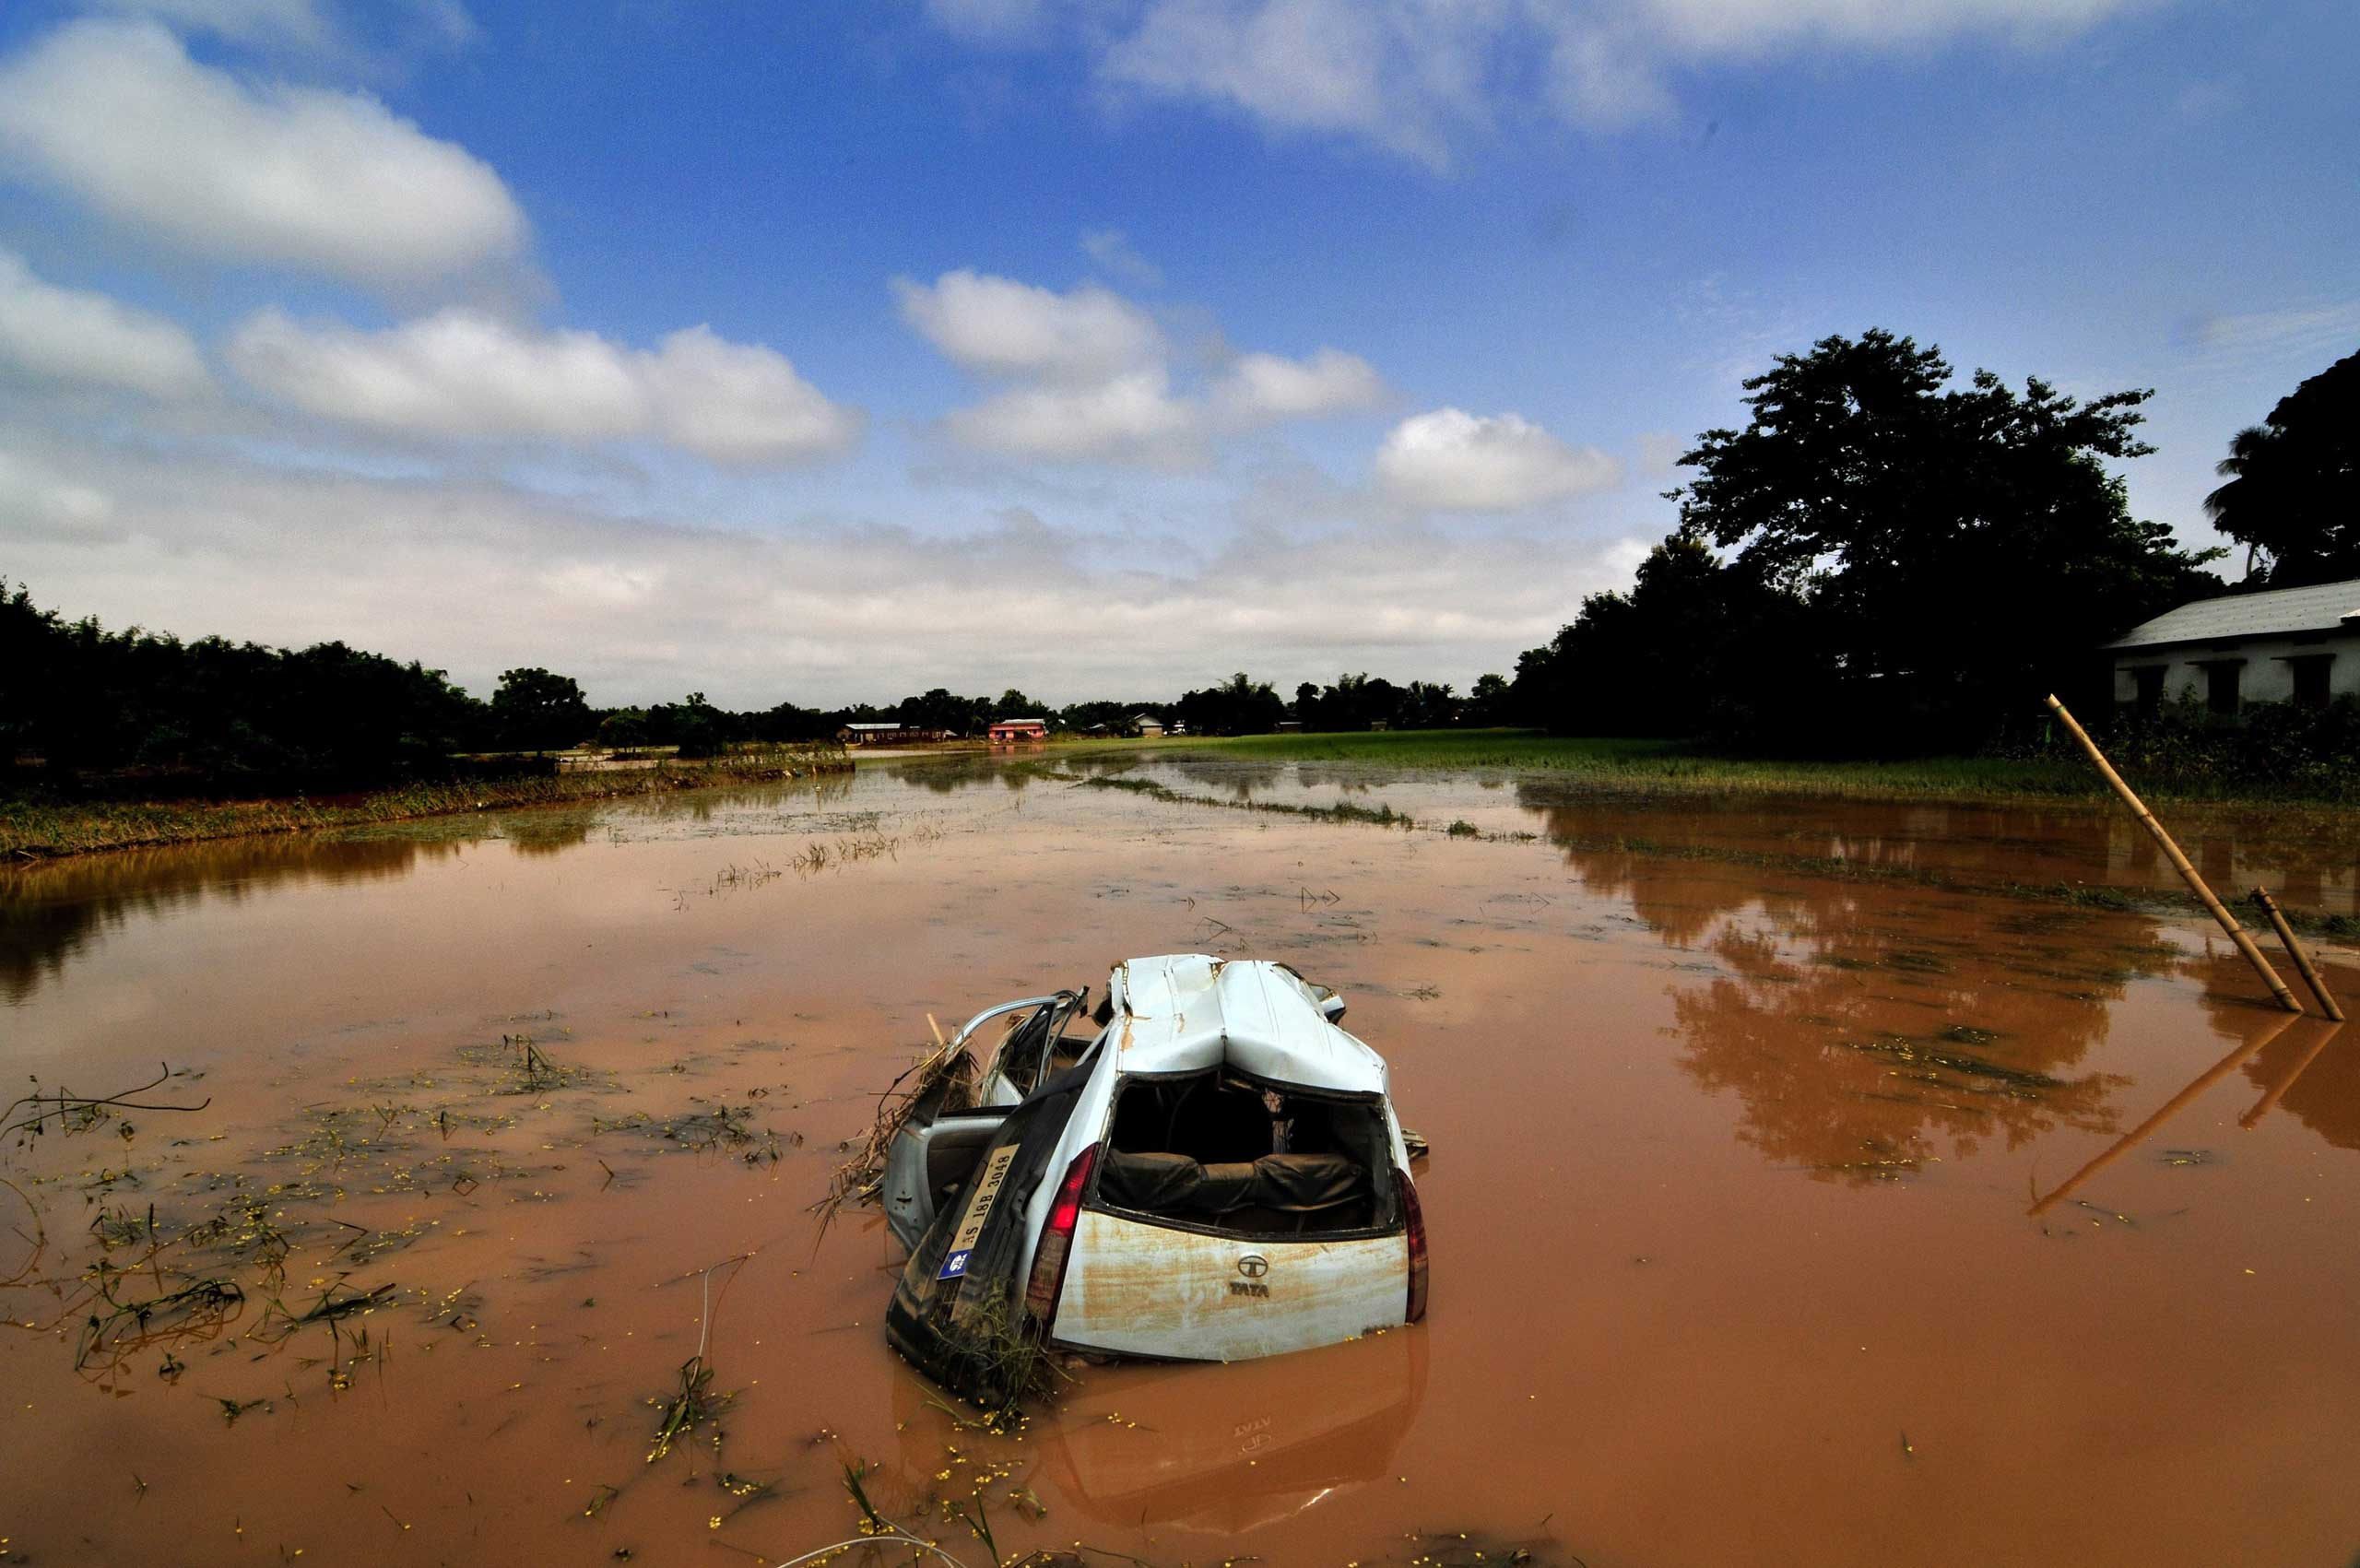 Sept. 24, 2014. A damaged car is surrounded by floodwaters in an agricultural field in Krishnai village, Goalpara district in Assam state, India.